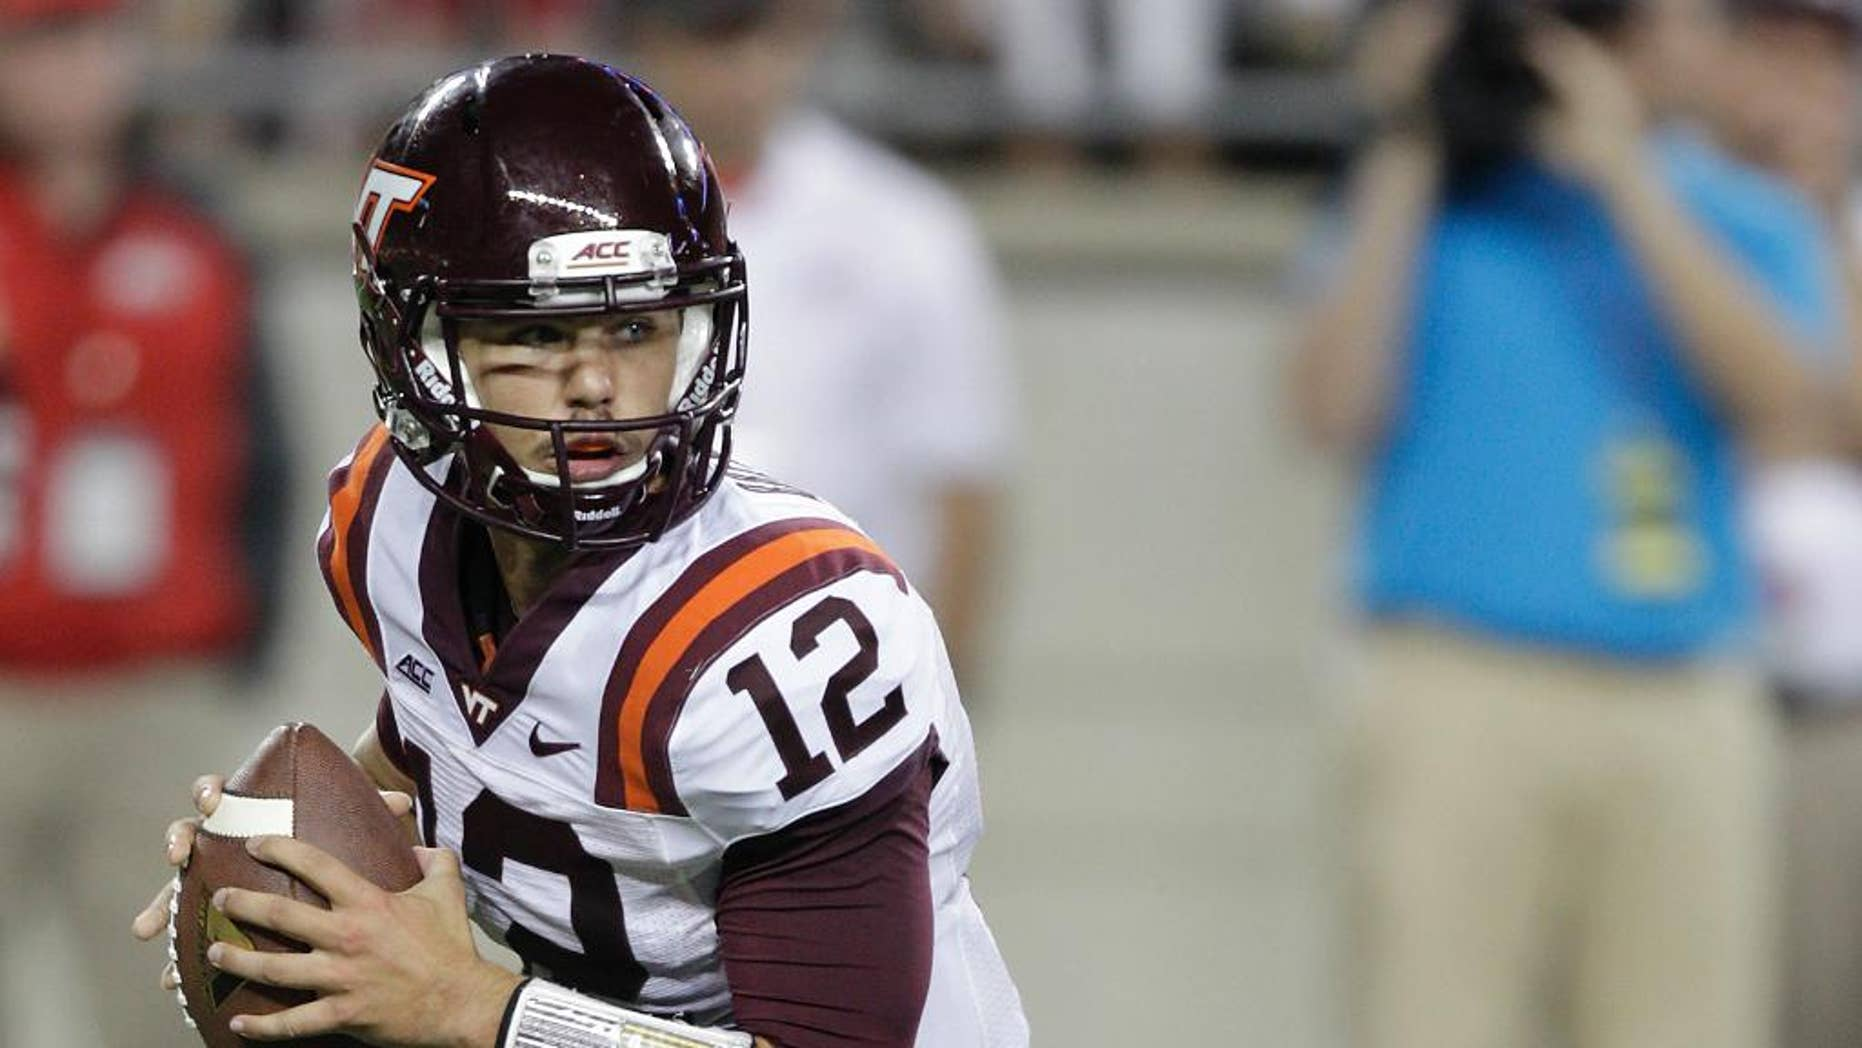 FILE- In this Sept. 6, 2014, file photo, Virginia Tech quarterback Michael Brewer rolls out against Ohio State during an NCAA college football game in Columbus, Ohio. Virginia Tech's loss to East Carolina made the high of winning the previous week at Ohio State a distant memory, Brewer said, and brought back into focus the Hokies' goal of playing well when they begin Atlantic Coast Conference play on Saturday against Georgia Tech. (AP Photo/Jay LaPrete, File)